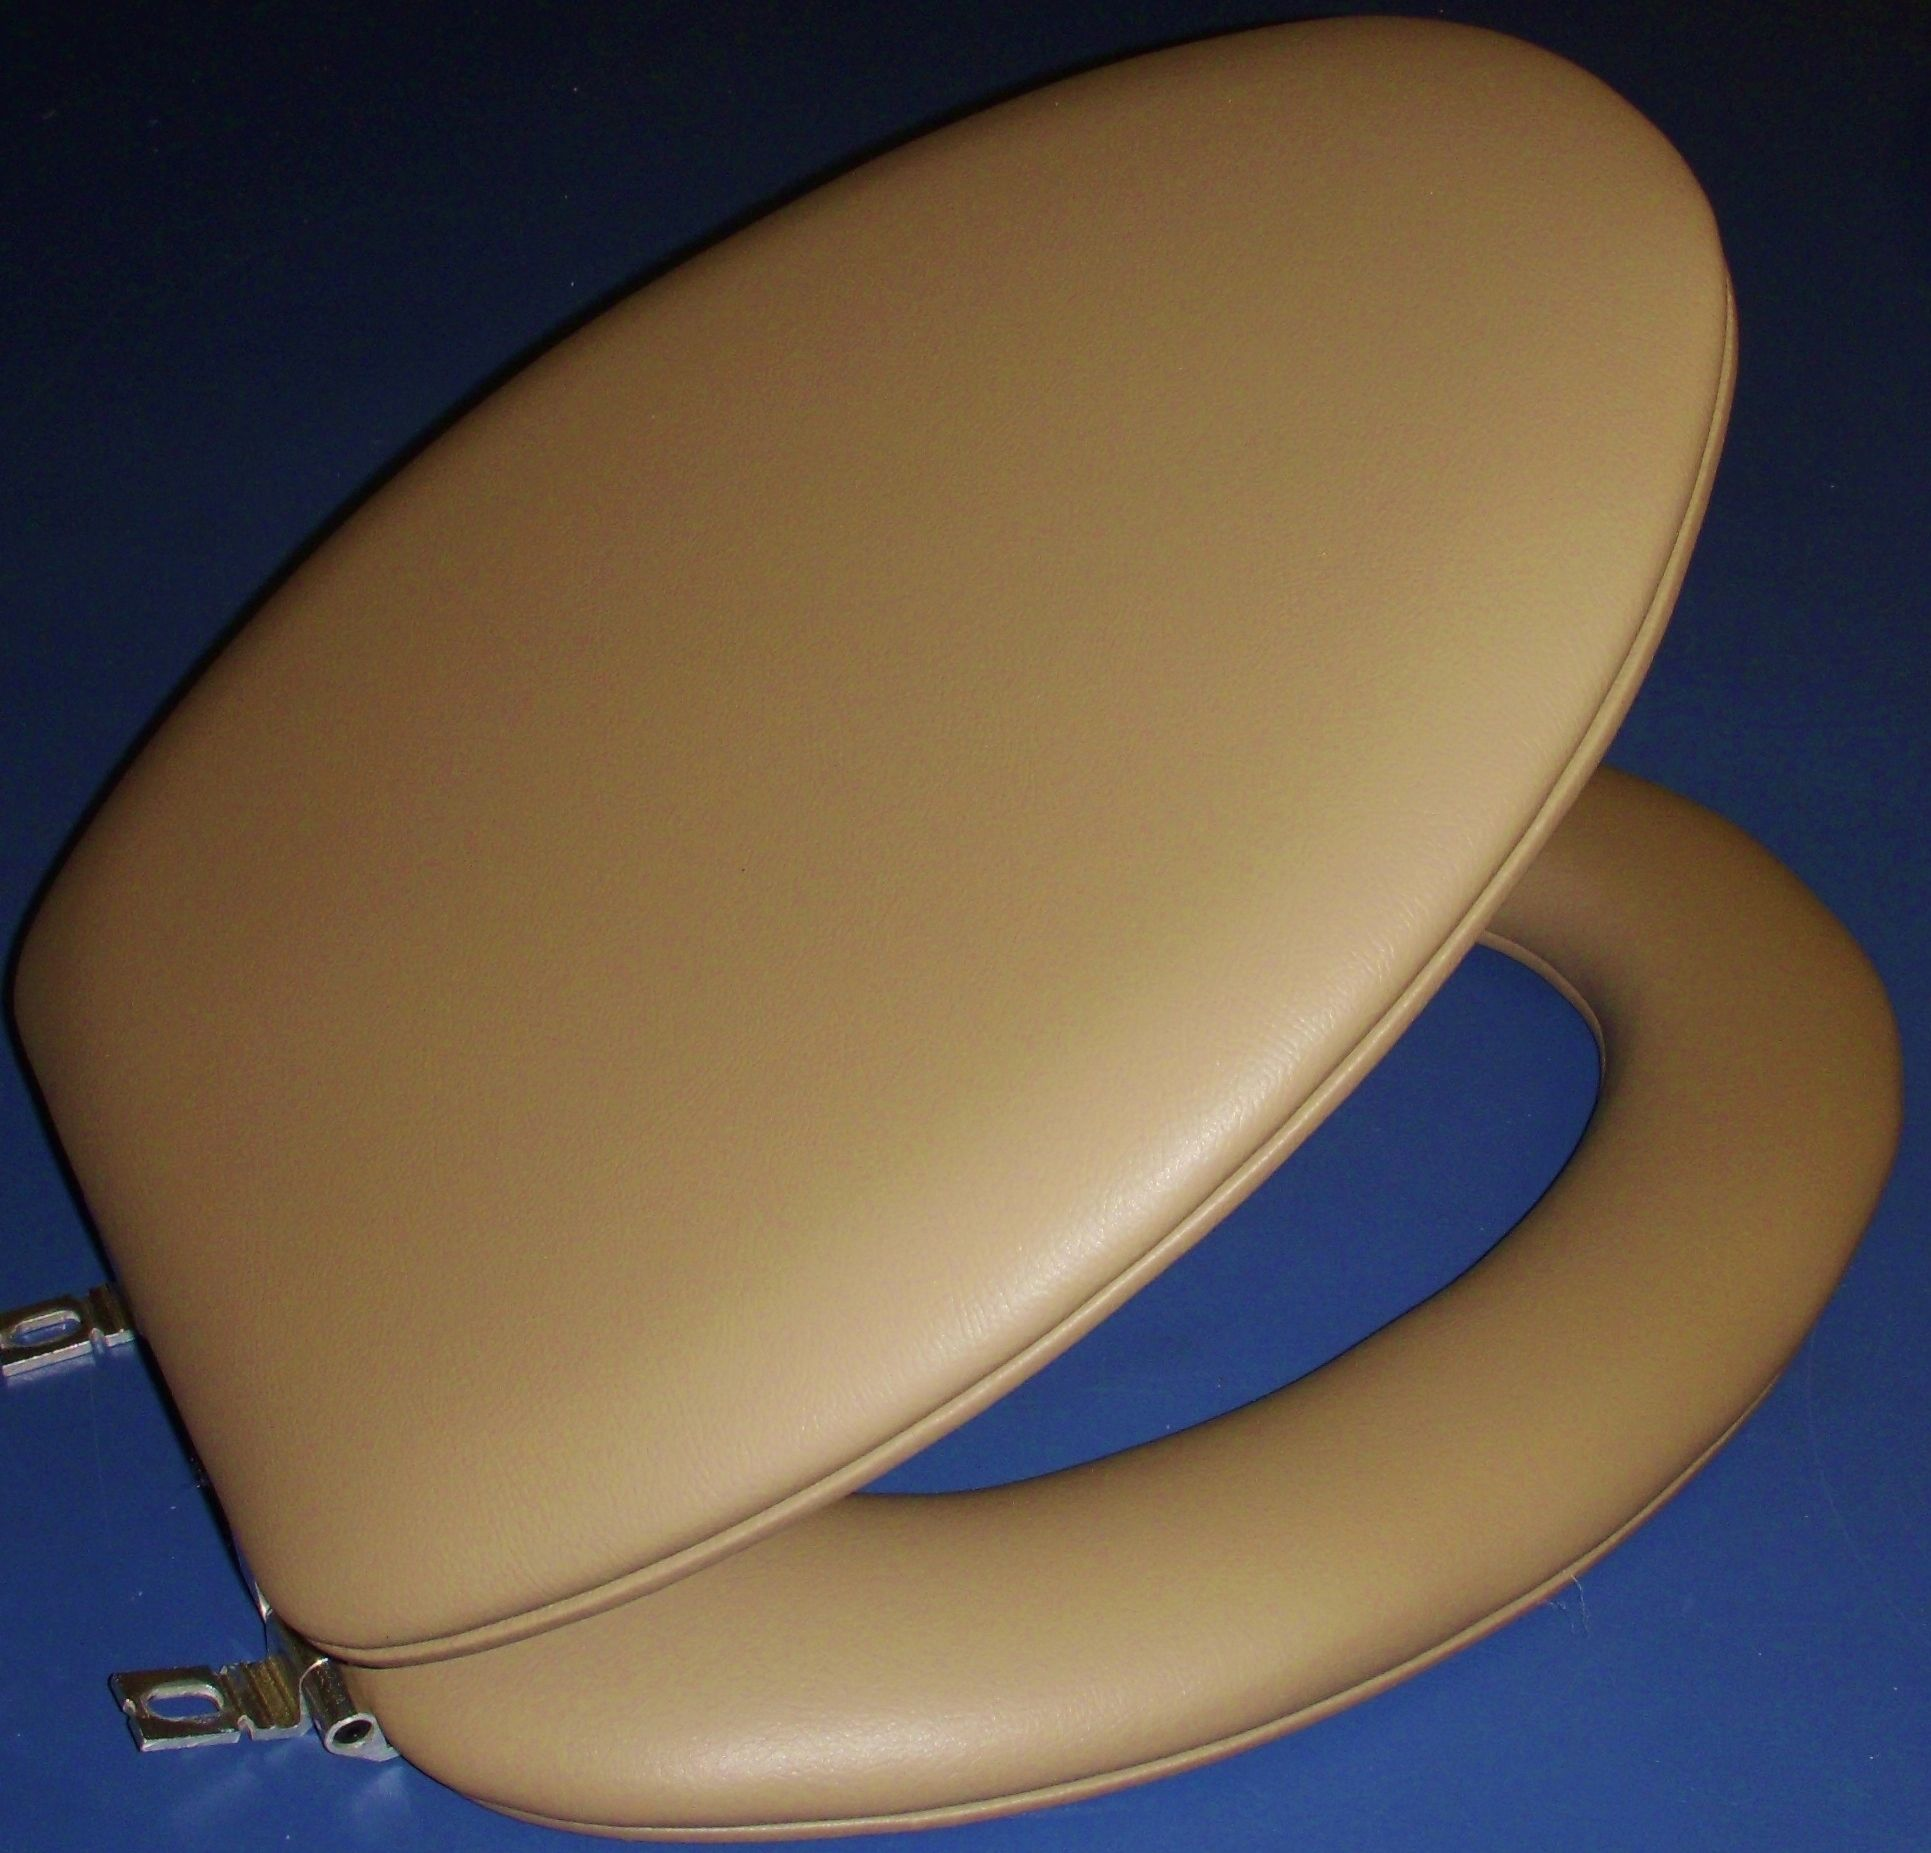 padded toilet seat elongated. Stone Padded Toilet Seat by Cloud Soft Seats We have a great taupe color again